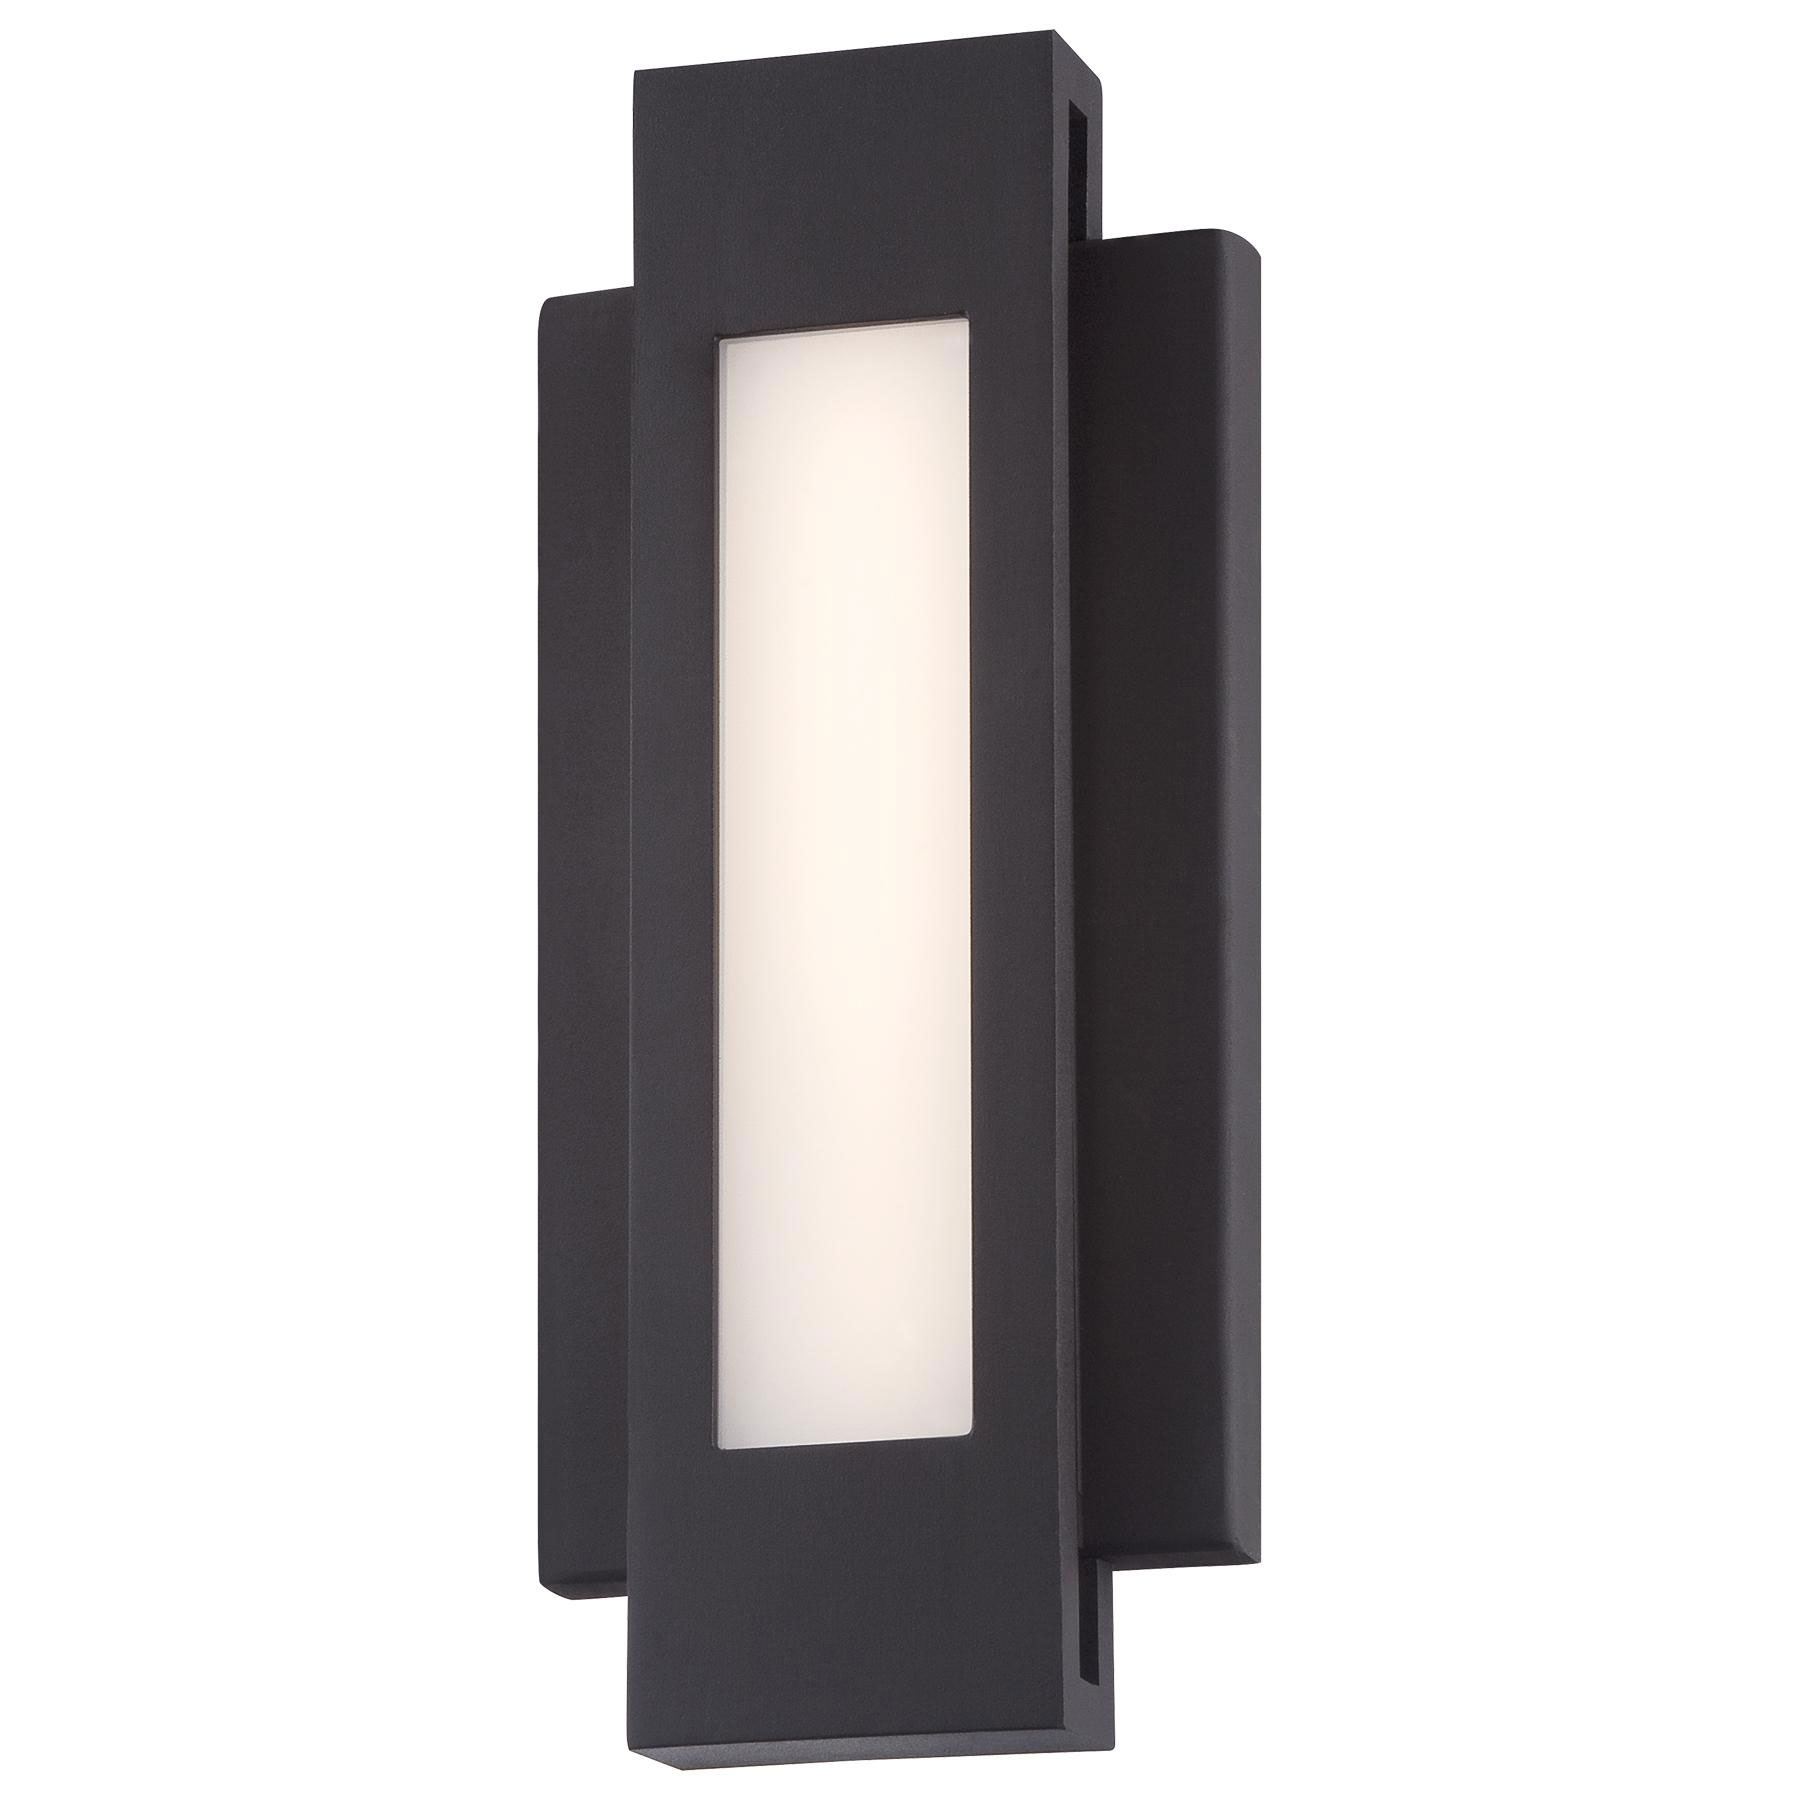 Insert outdoor led wall sconce by george kovacs